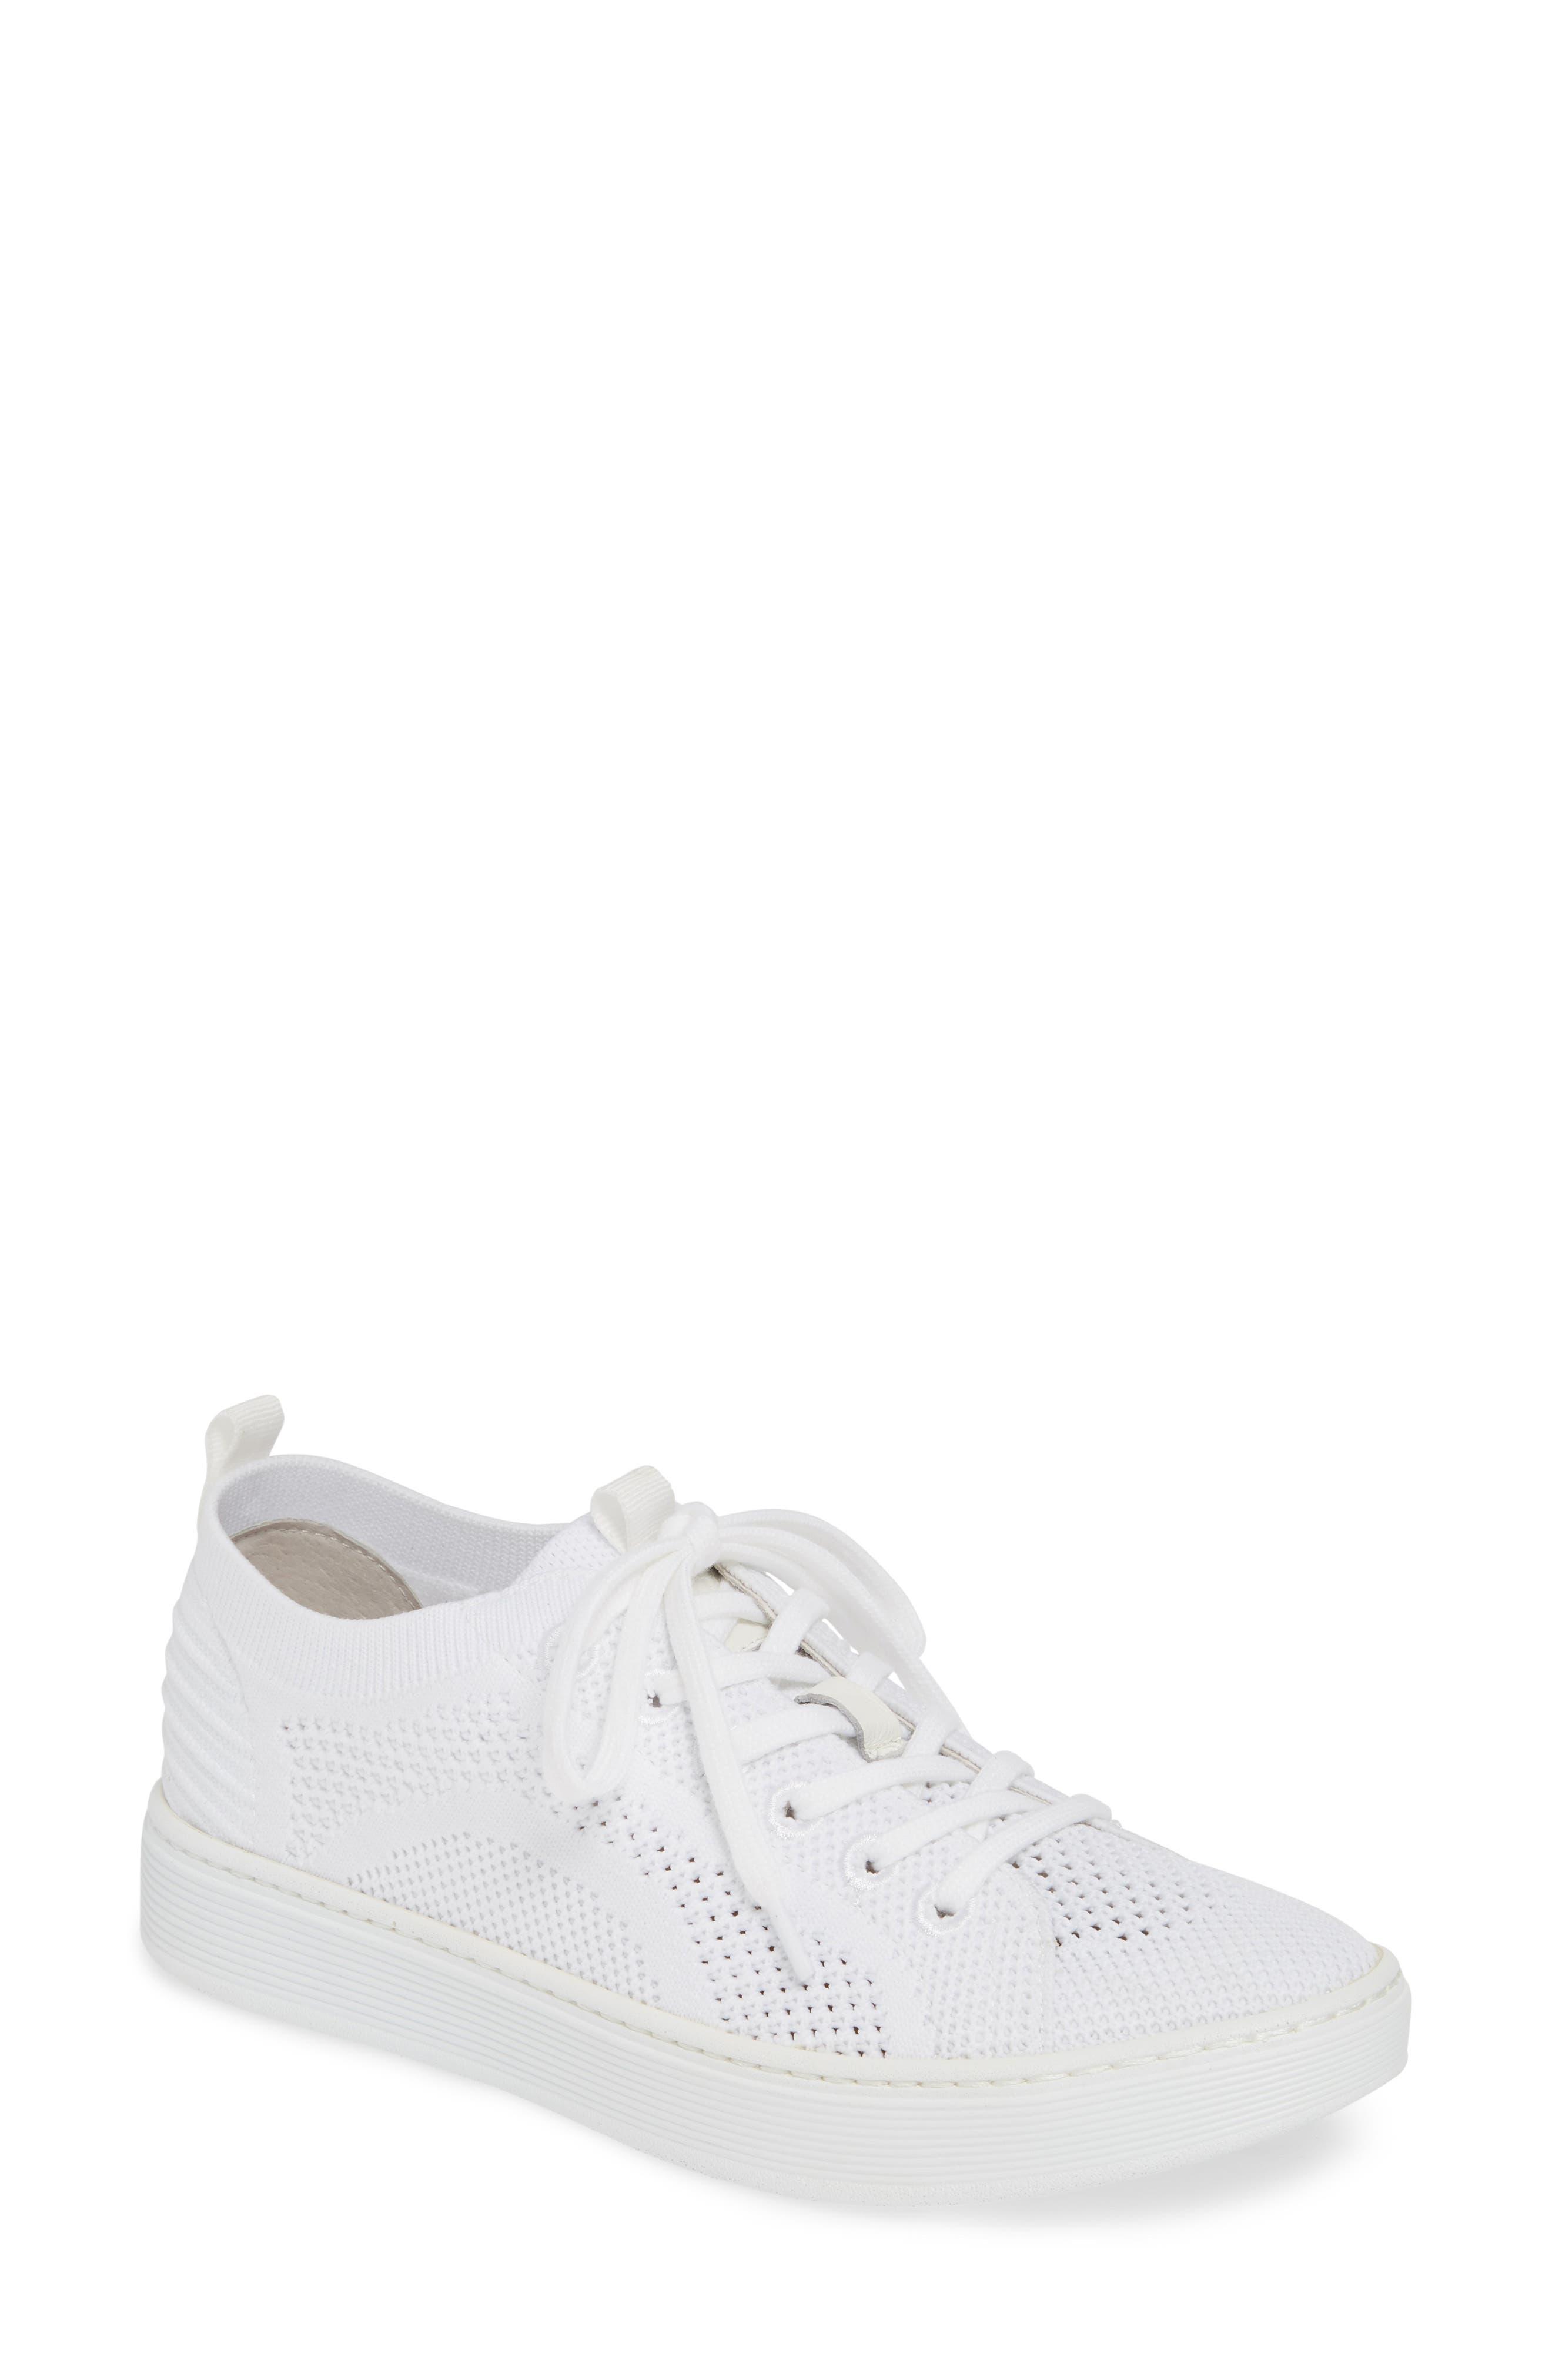 Sofft Somers Knit Sneaker- White